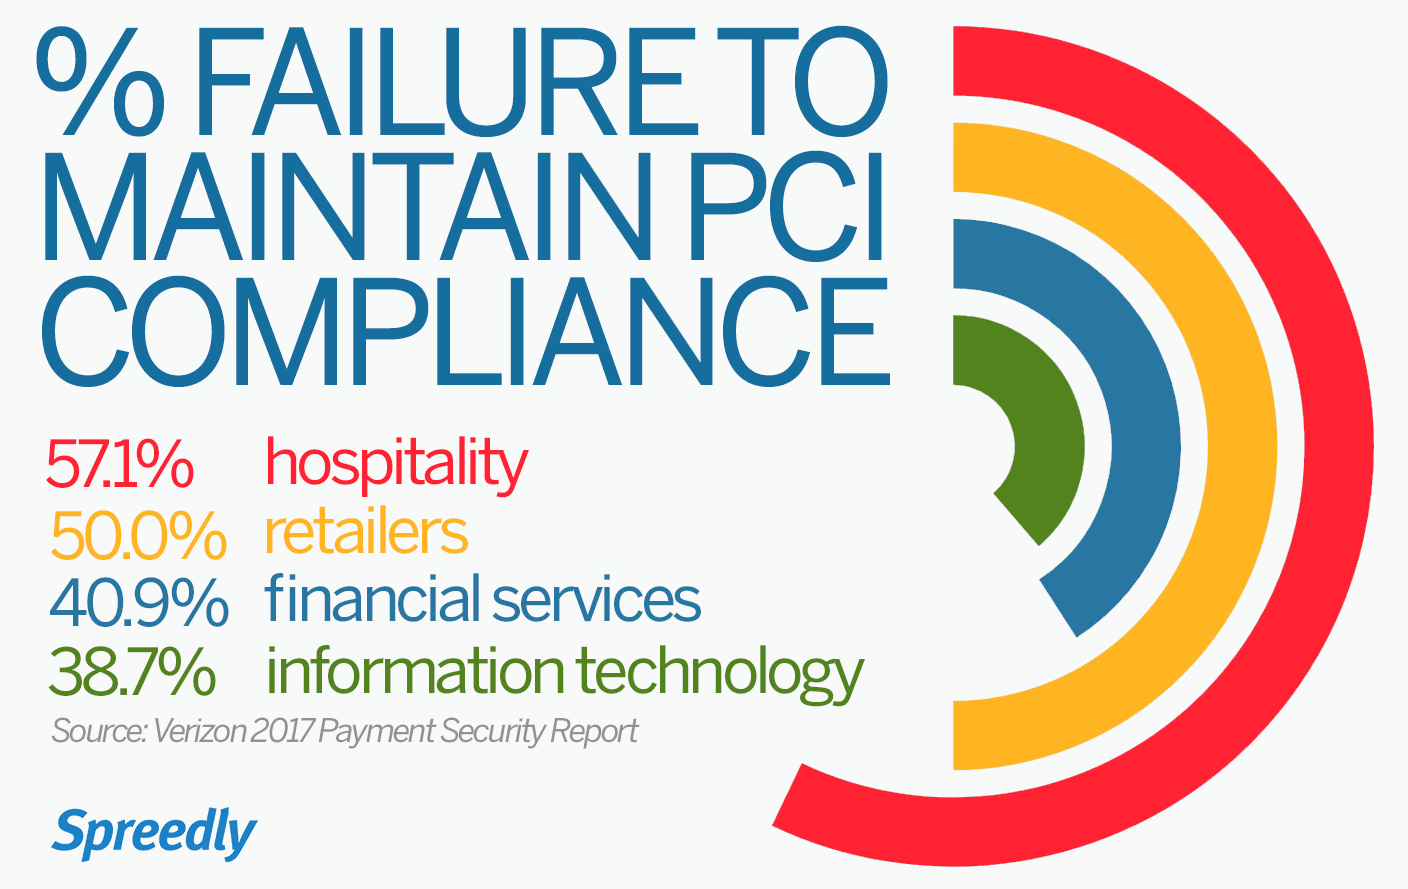 pci dss compliance The payment card industry data security standard (pci dss) consists of a minimum set of necessary requirements that every merchant and/or service provider must meet in order to protect the cardholder data of their customers.